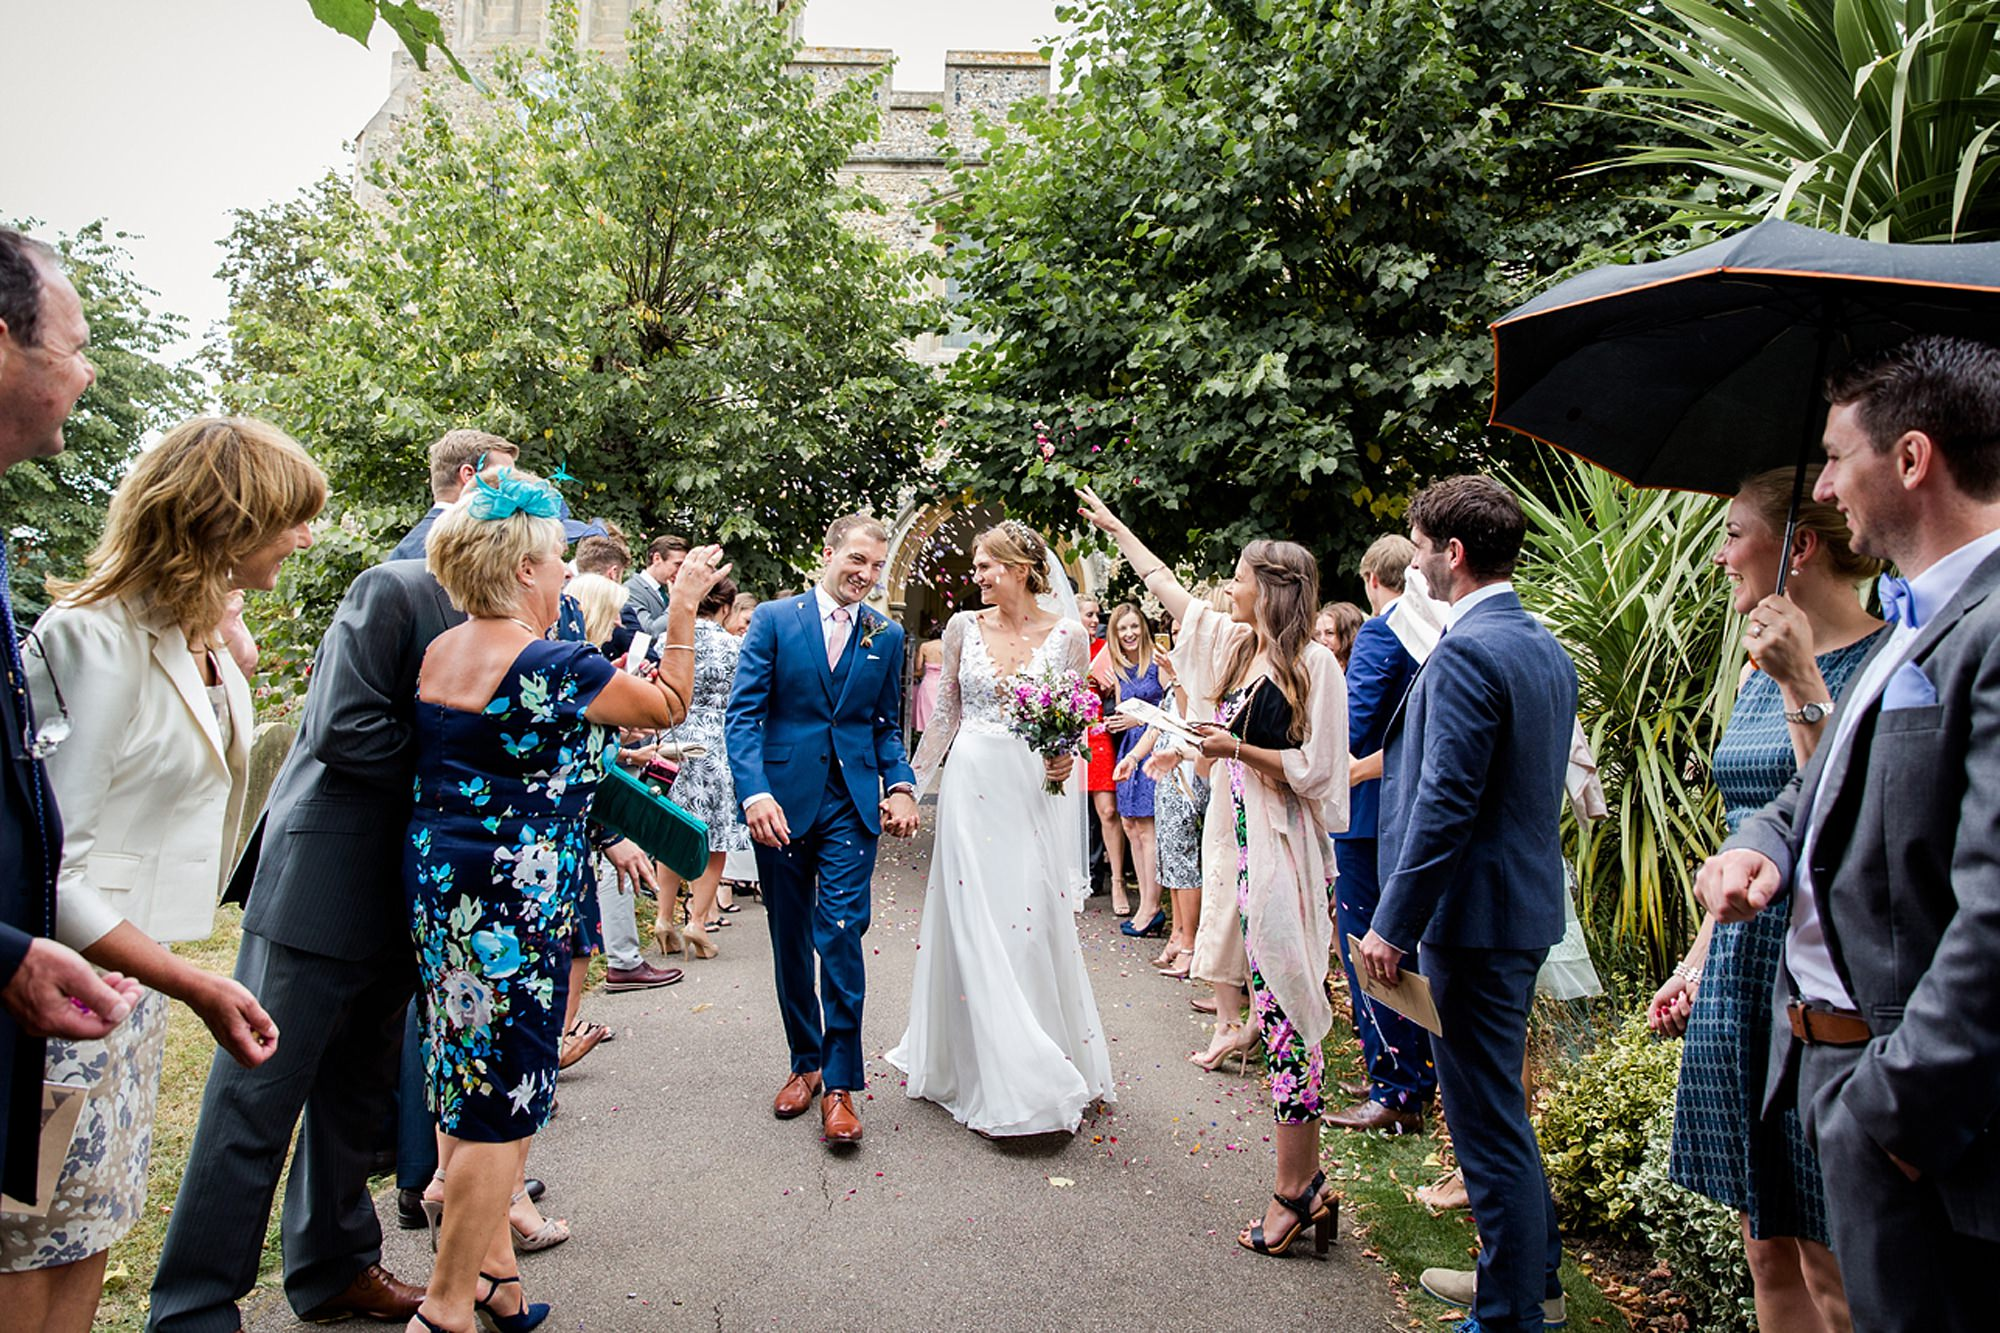 Marks Hall Estate wedding photography bride and groom walking through confetti